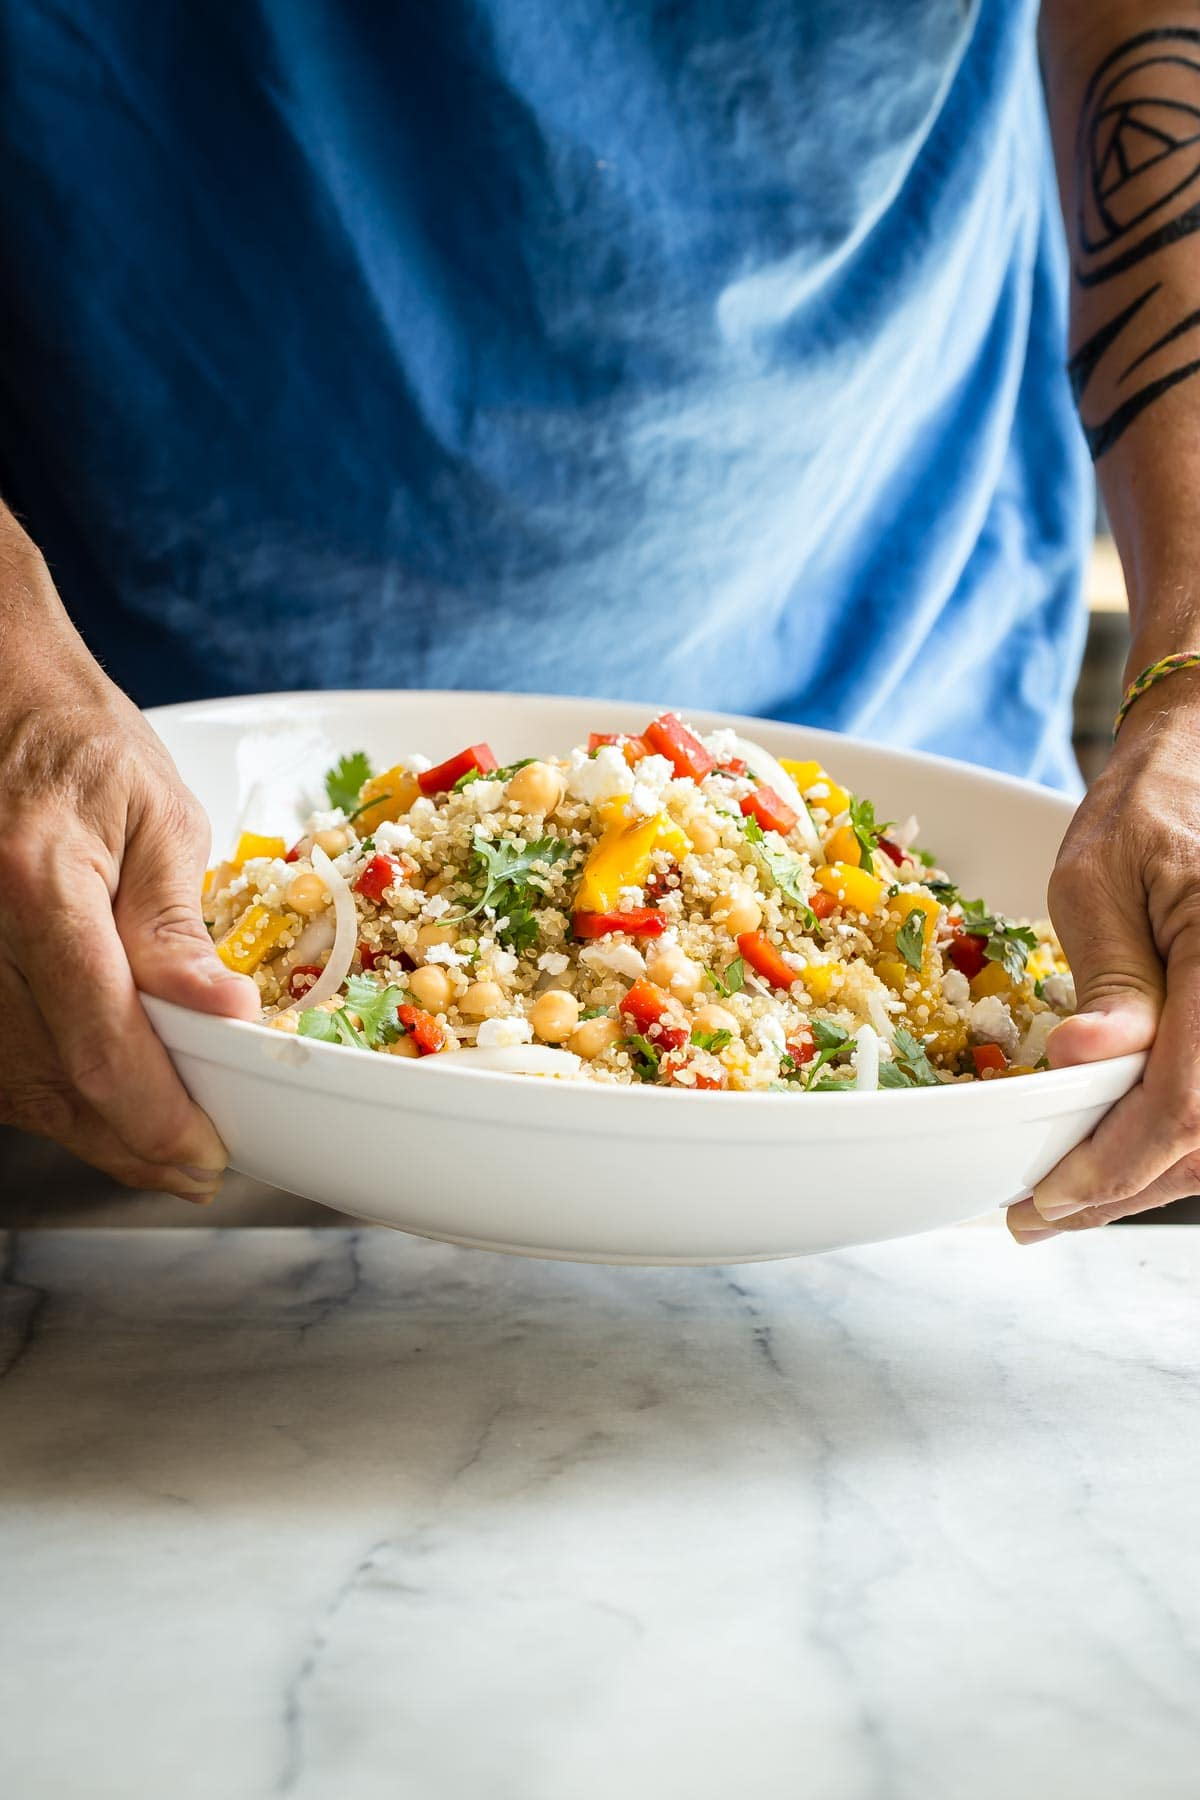 Quinoa salad loaded with vegetables and crumbled feta cheese